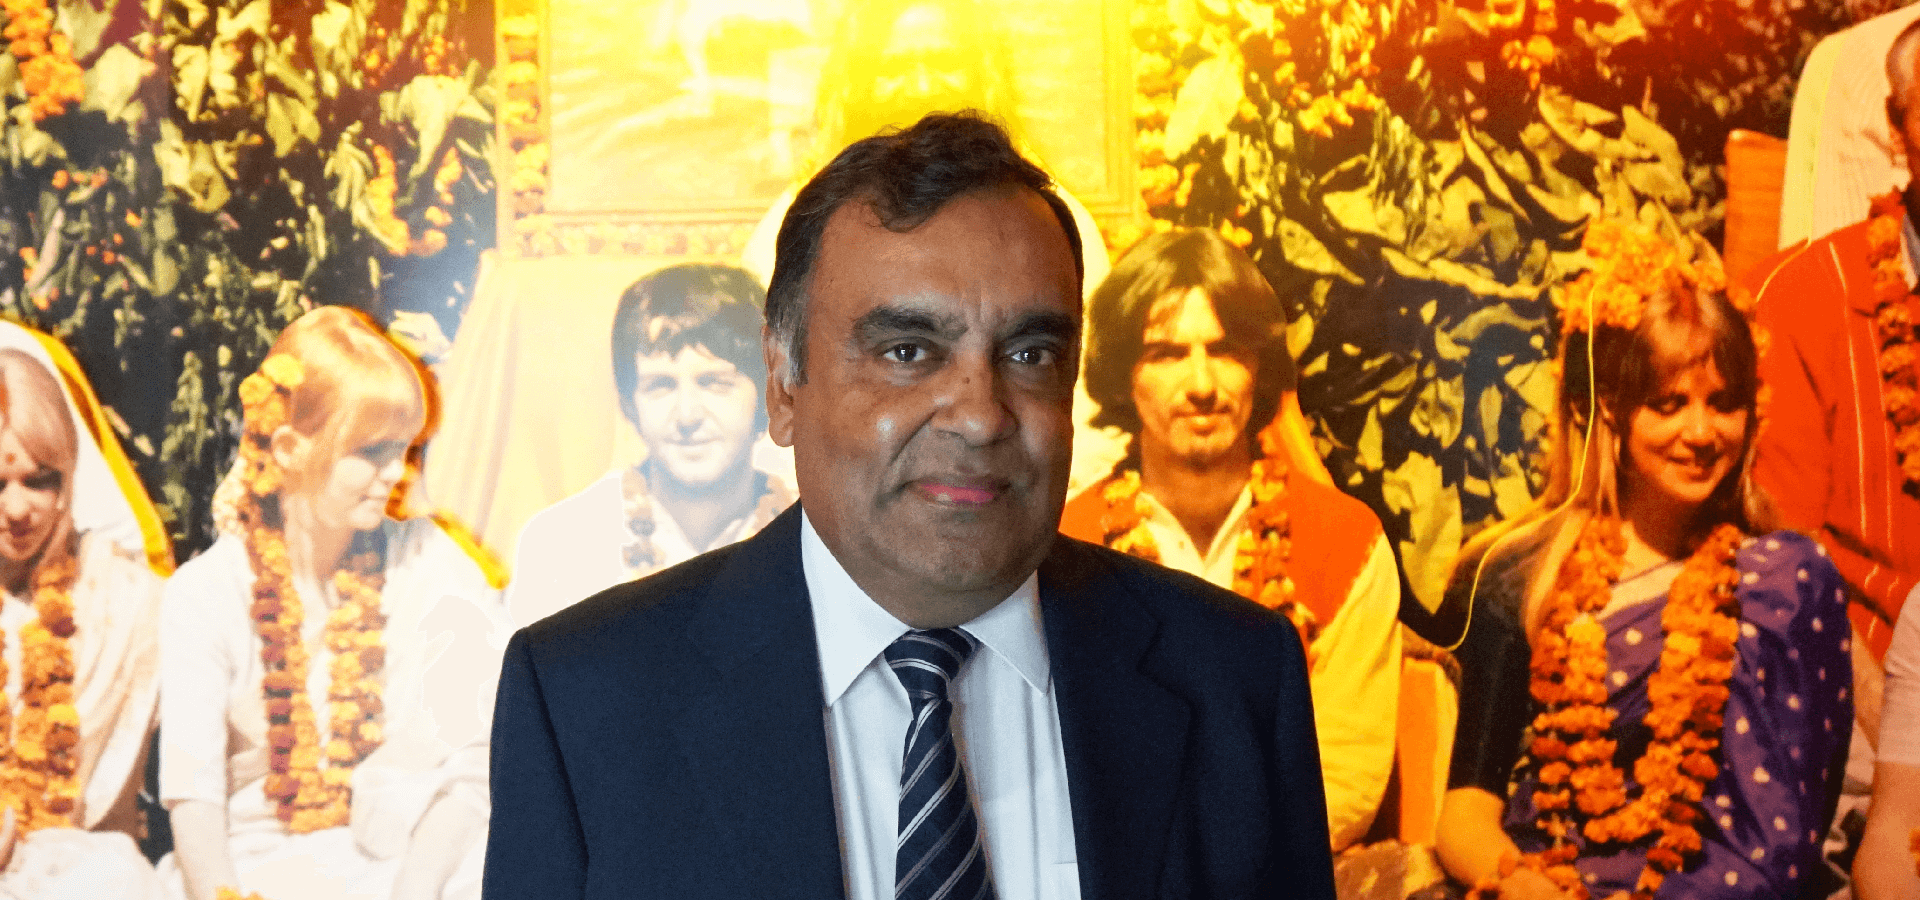 Beatles in India: High Commissioner visits exhibition